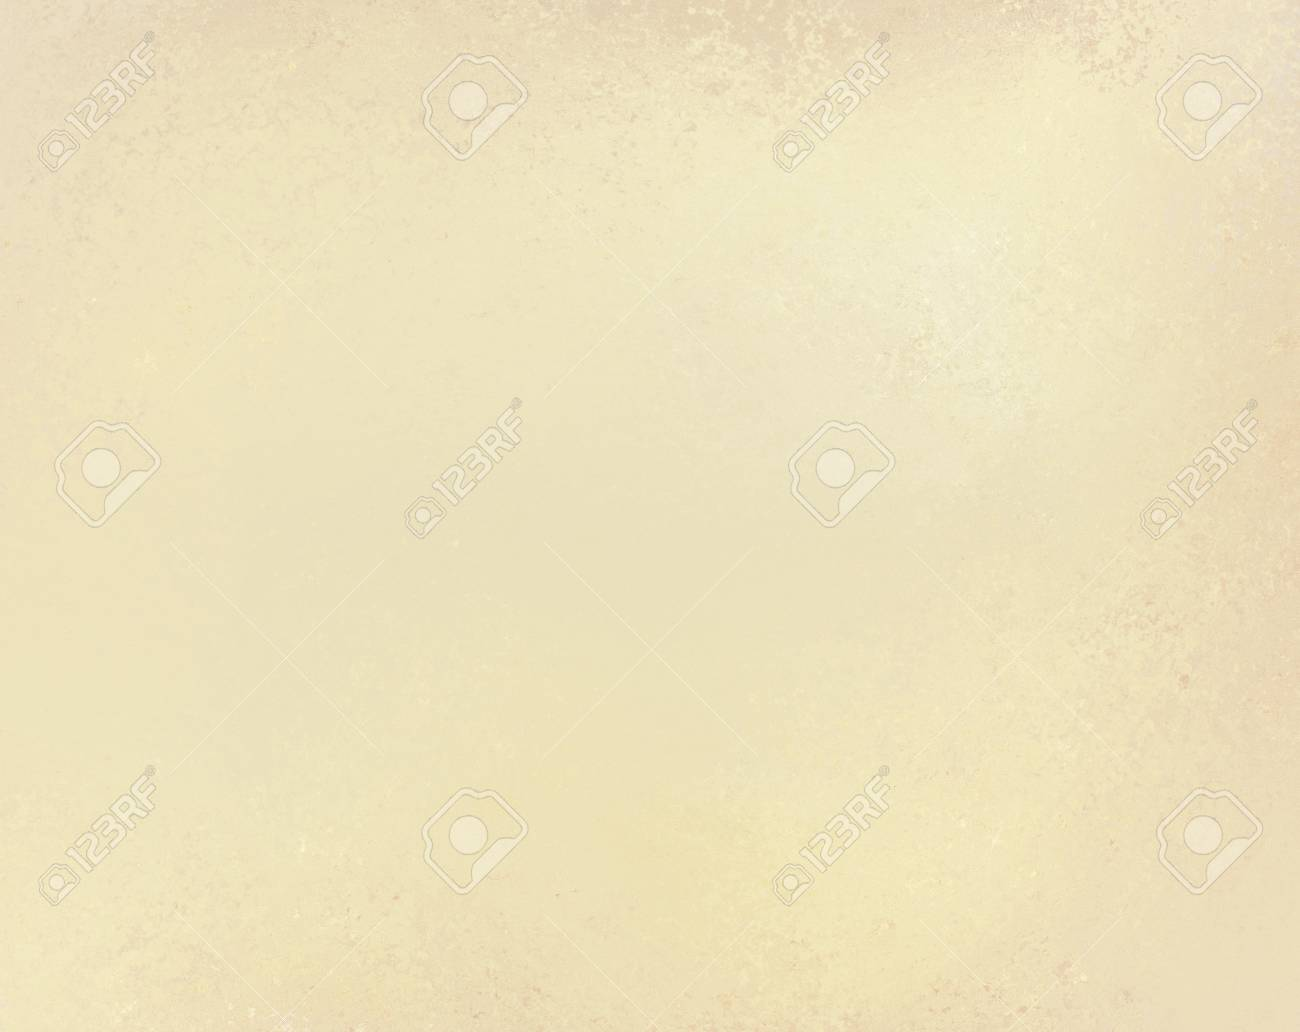 Vintage Beige Or Off White Background Paper Texture Stock Photo